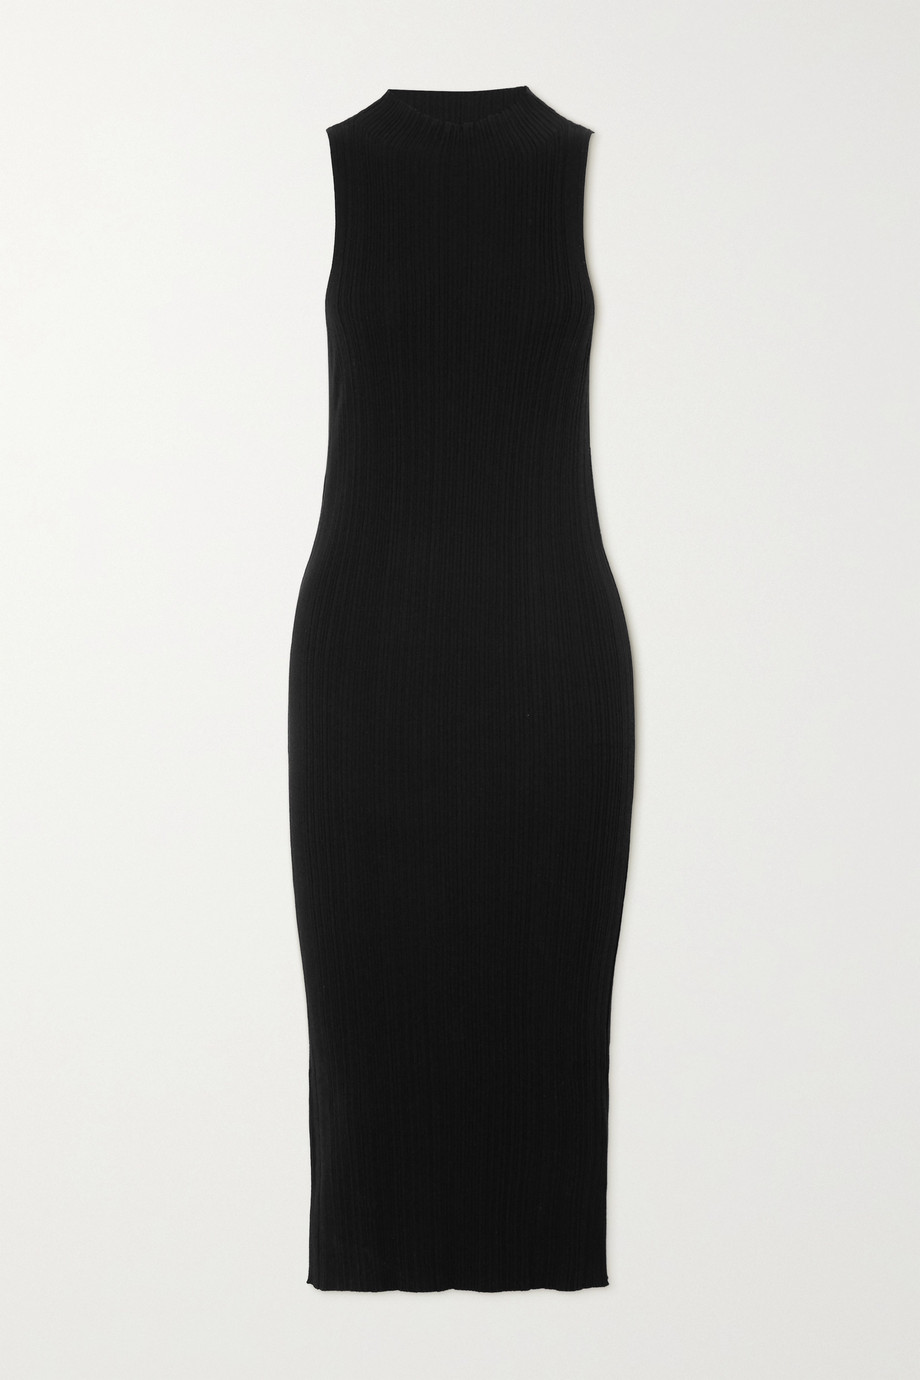 Ninety Percent Ribbed Tencel-blend midi dress